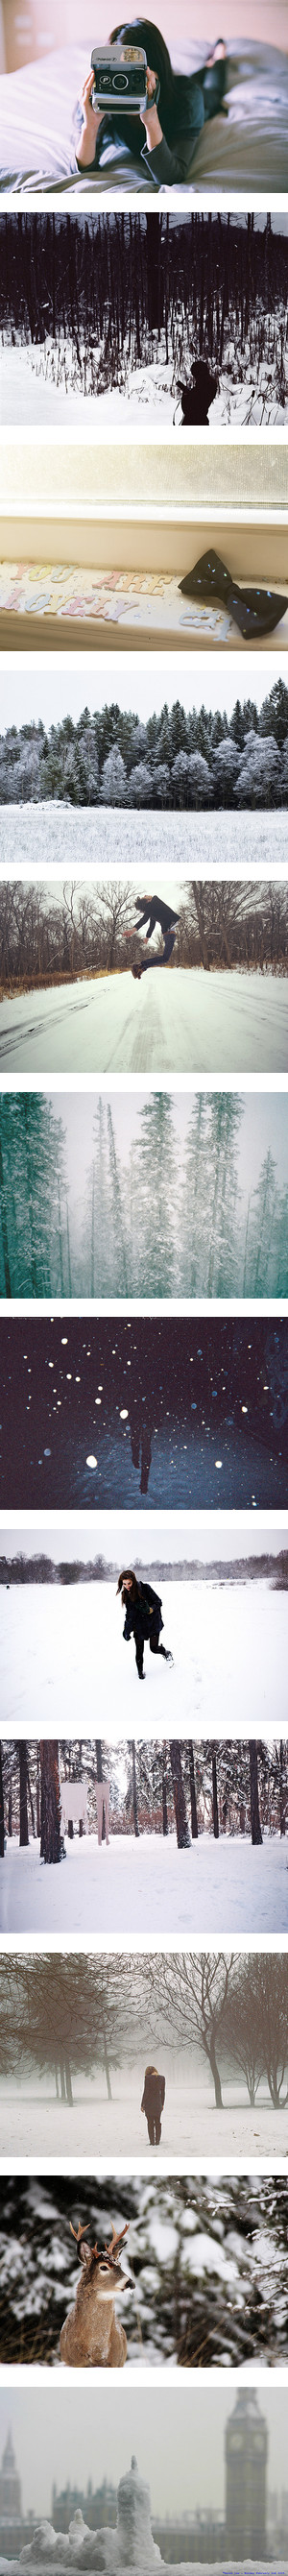 """Take time to chase the snowflakes."" by heyitzbriannaa ❤ liked on Polyvore"